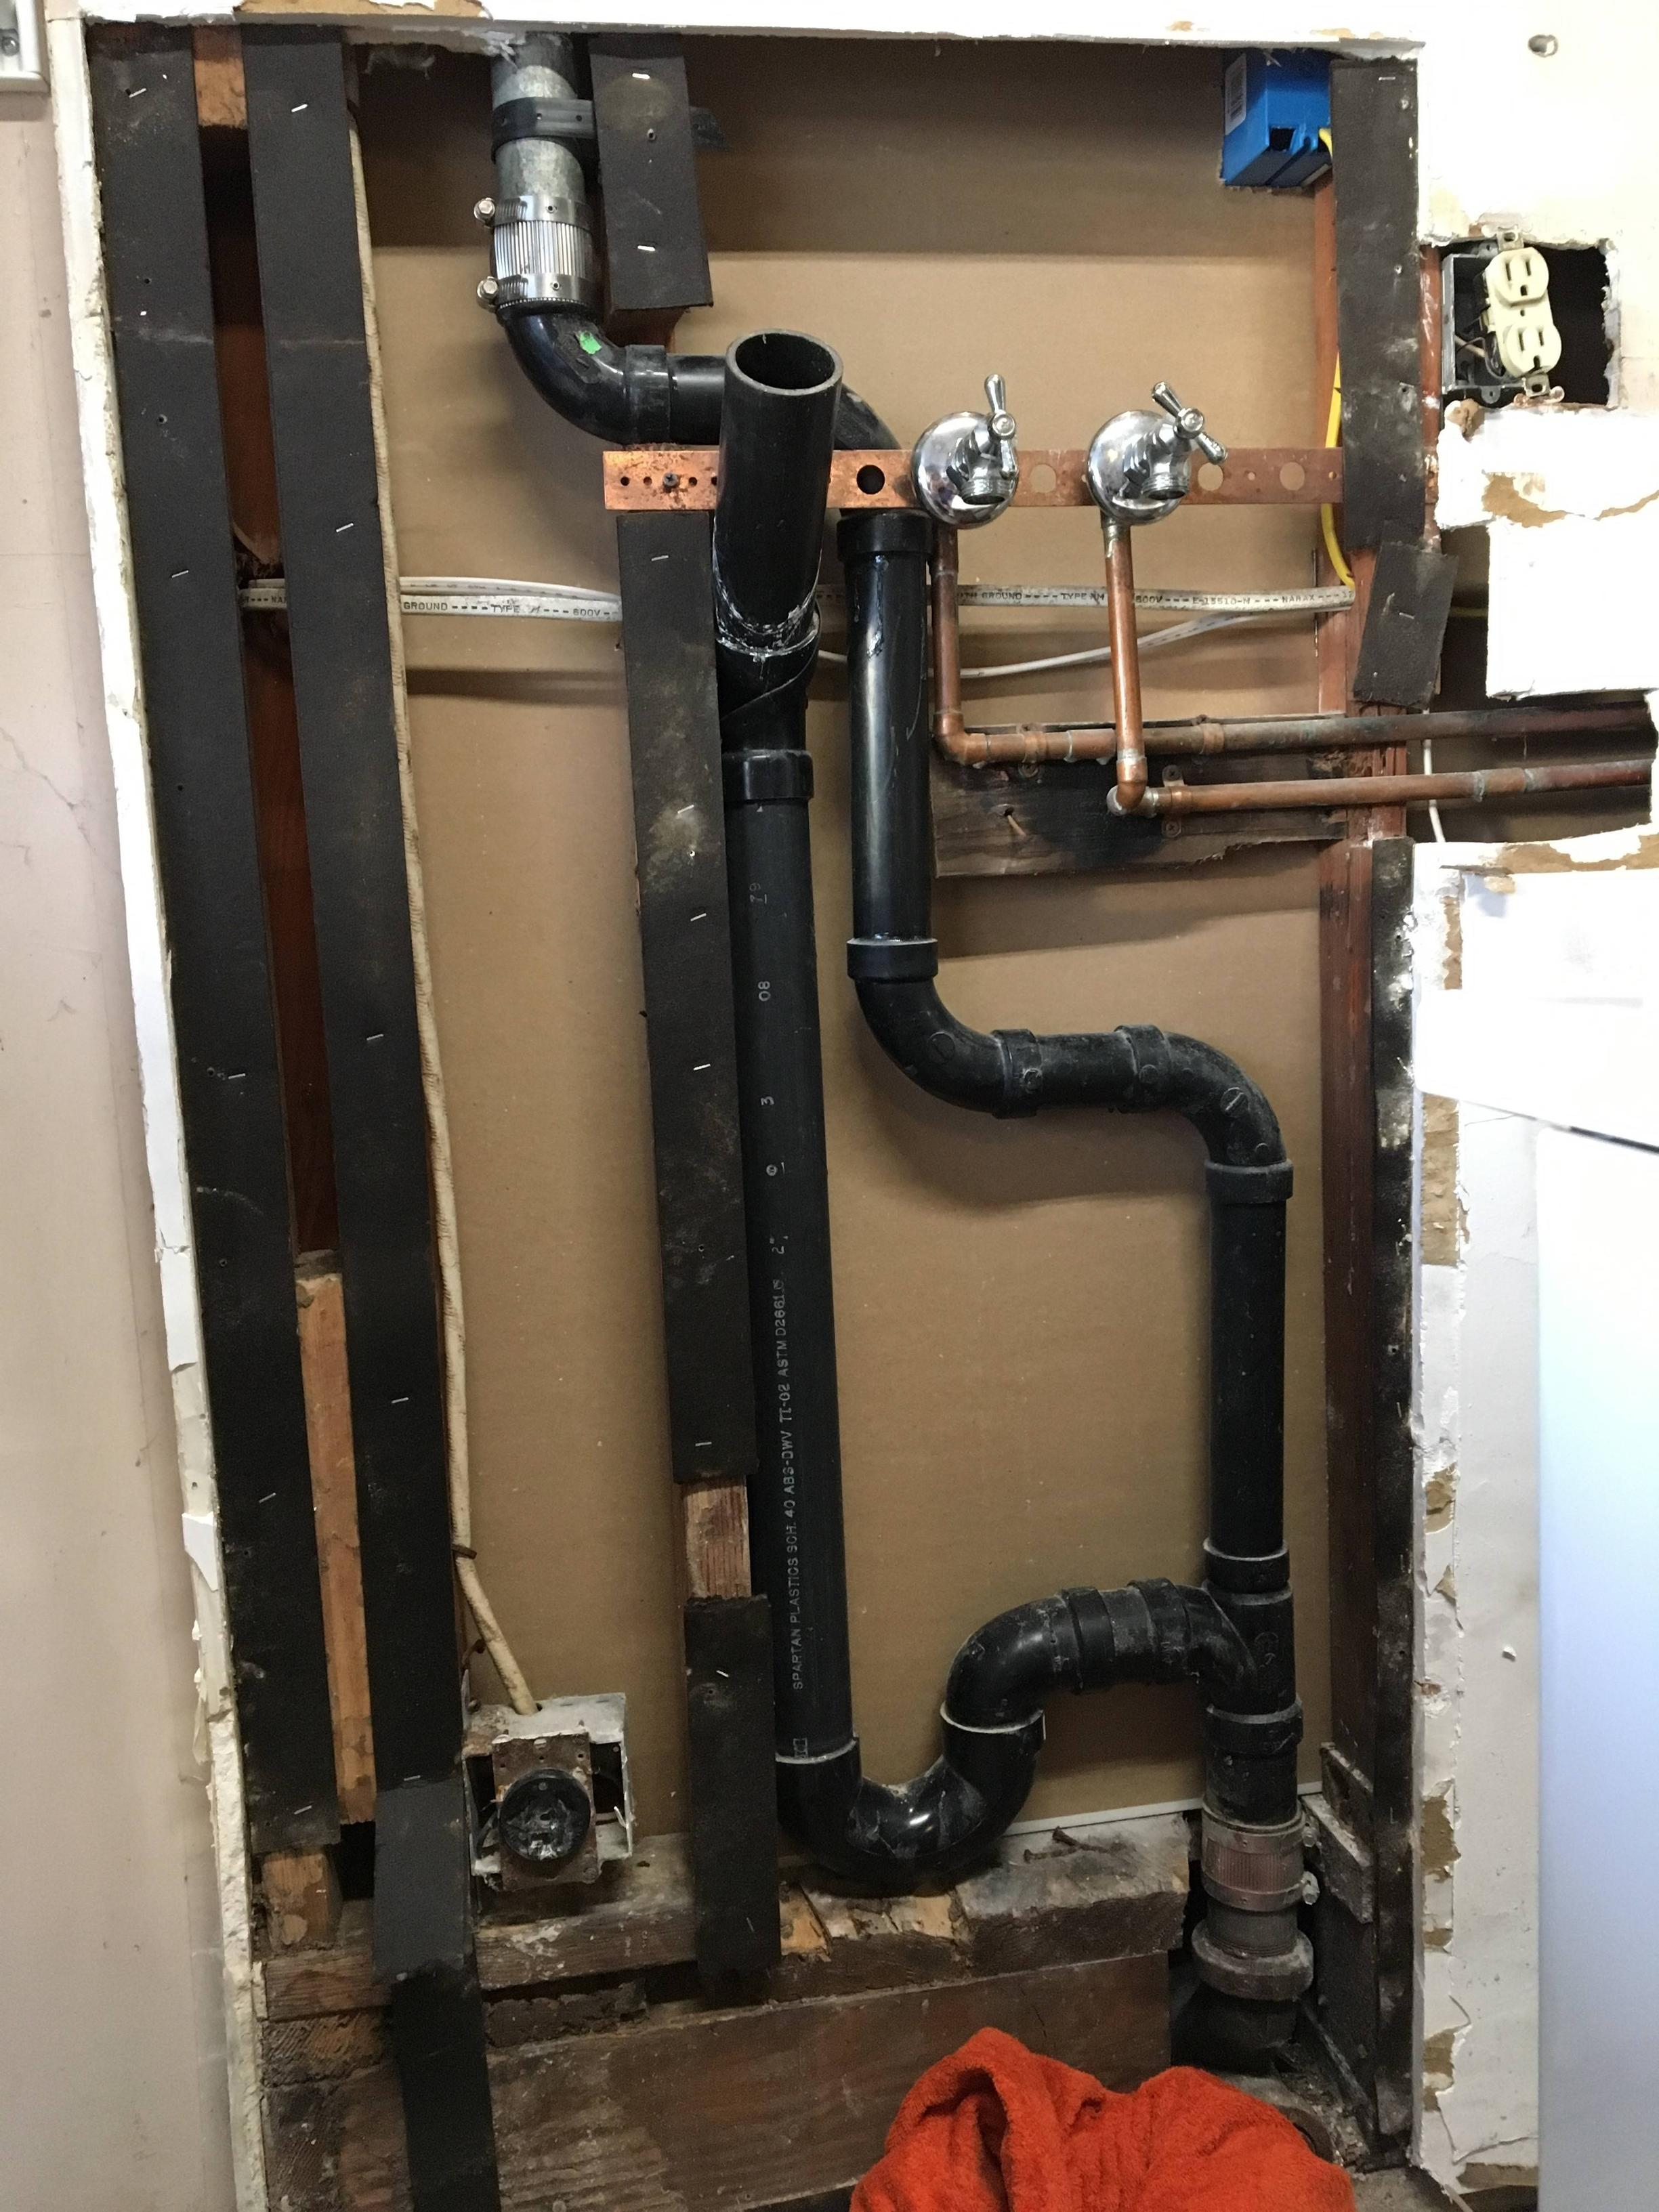 utility sink drain into a tight space